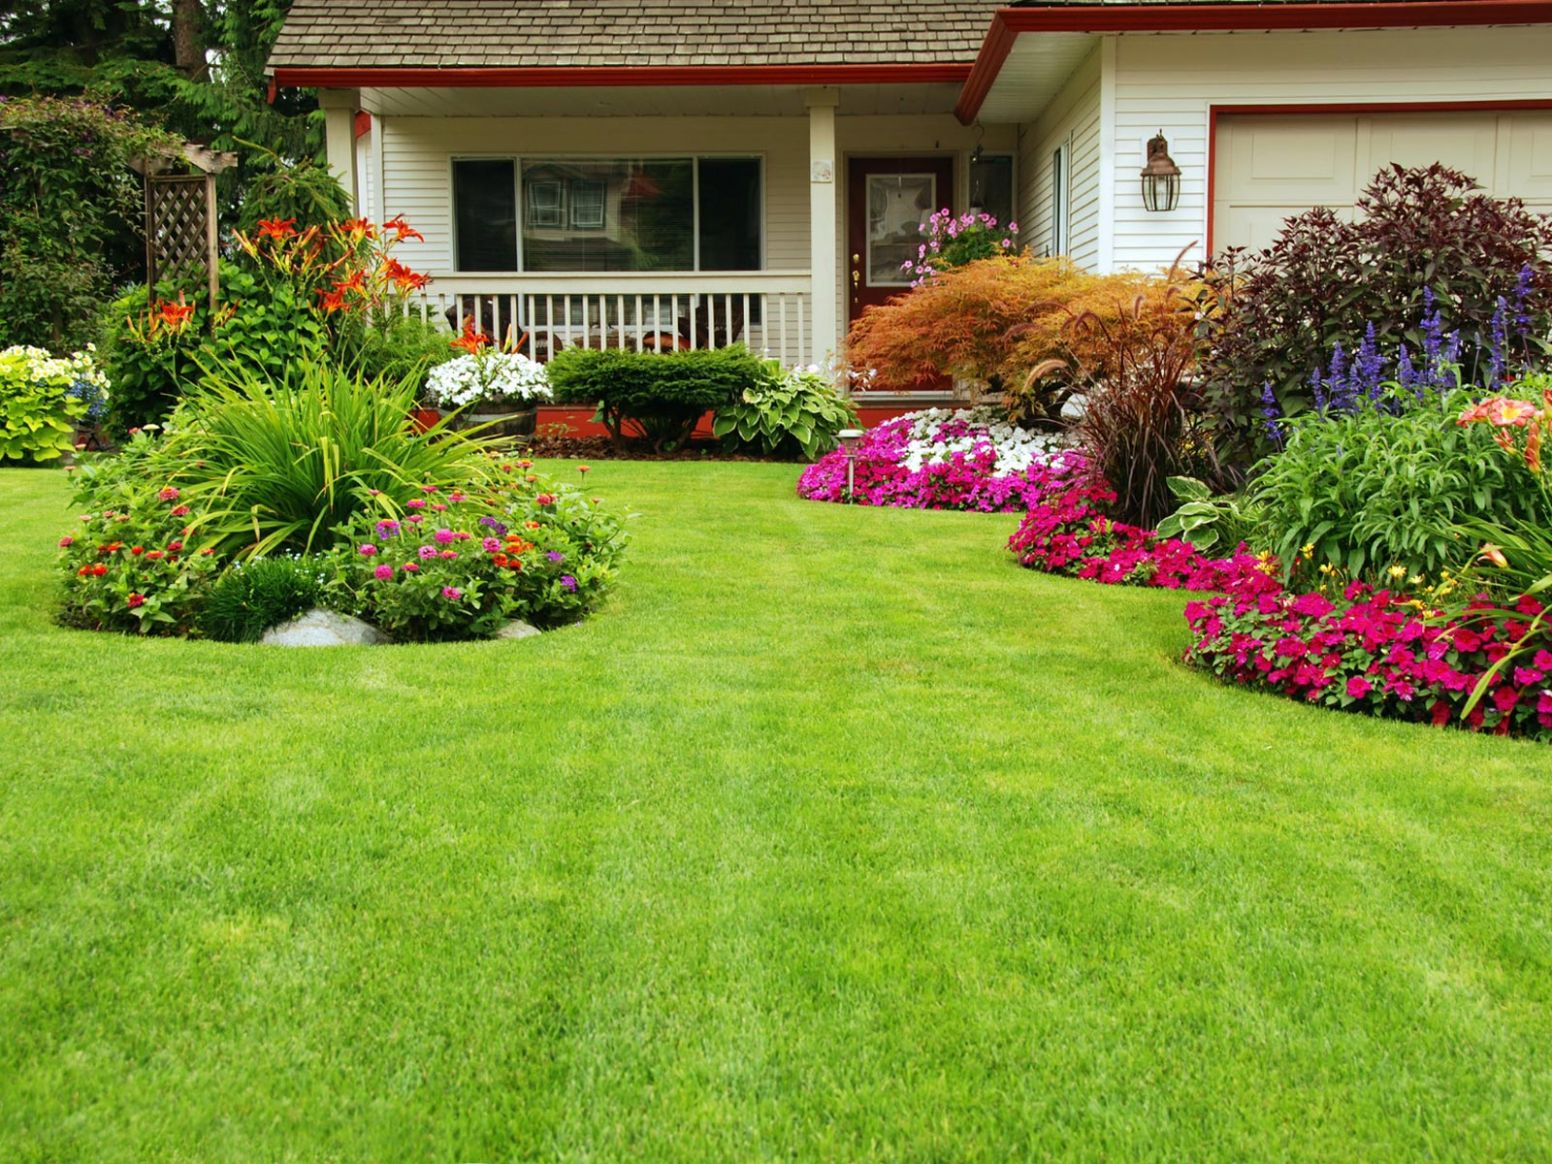 Landscaping Ideas to Help Sell Your Calgary Home - backyard ideas calgary